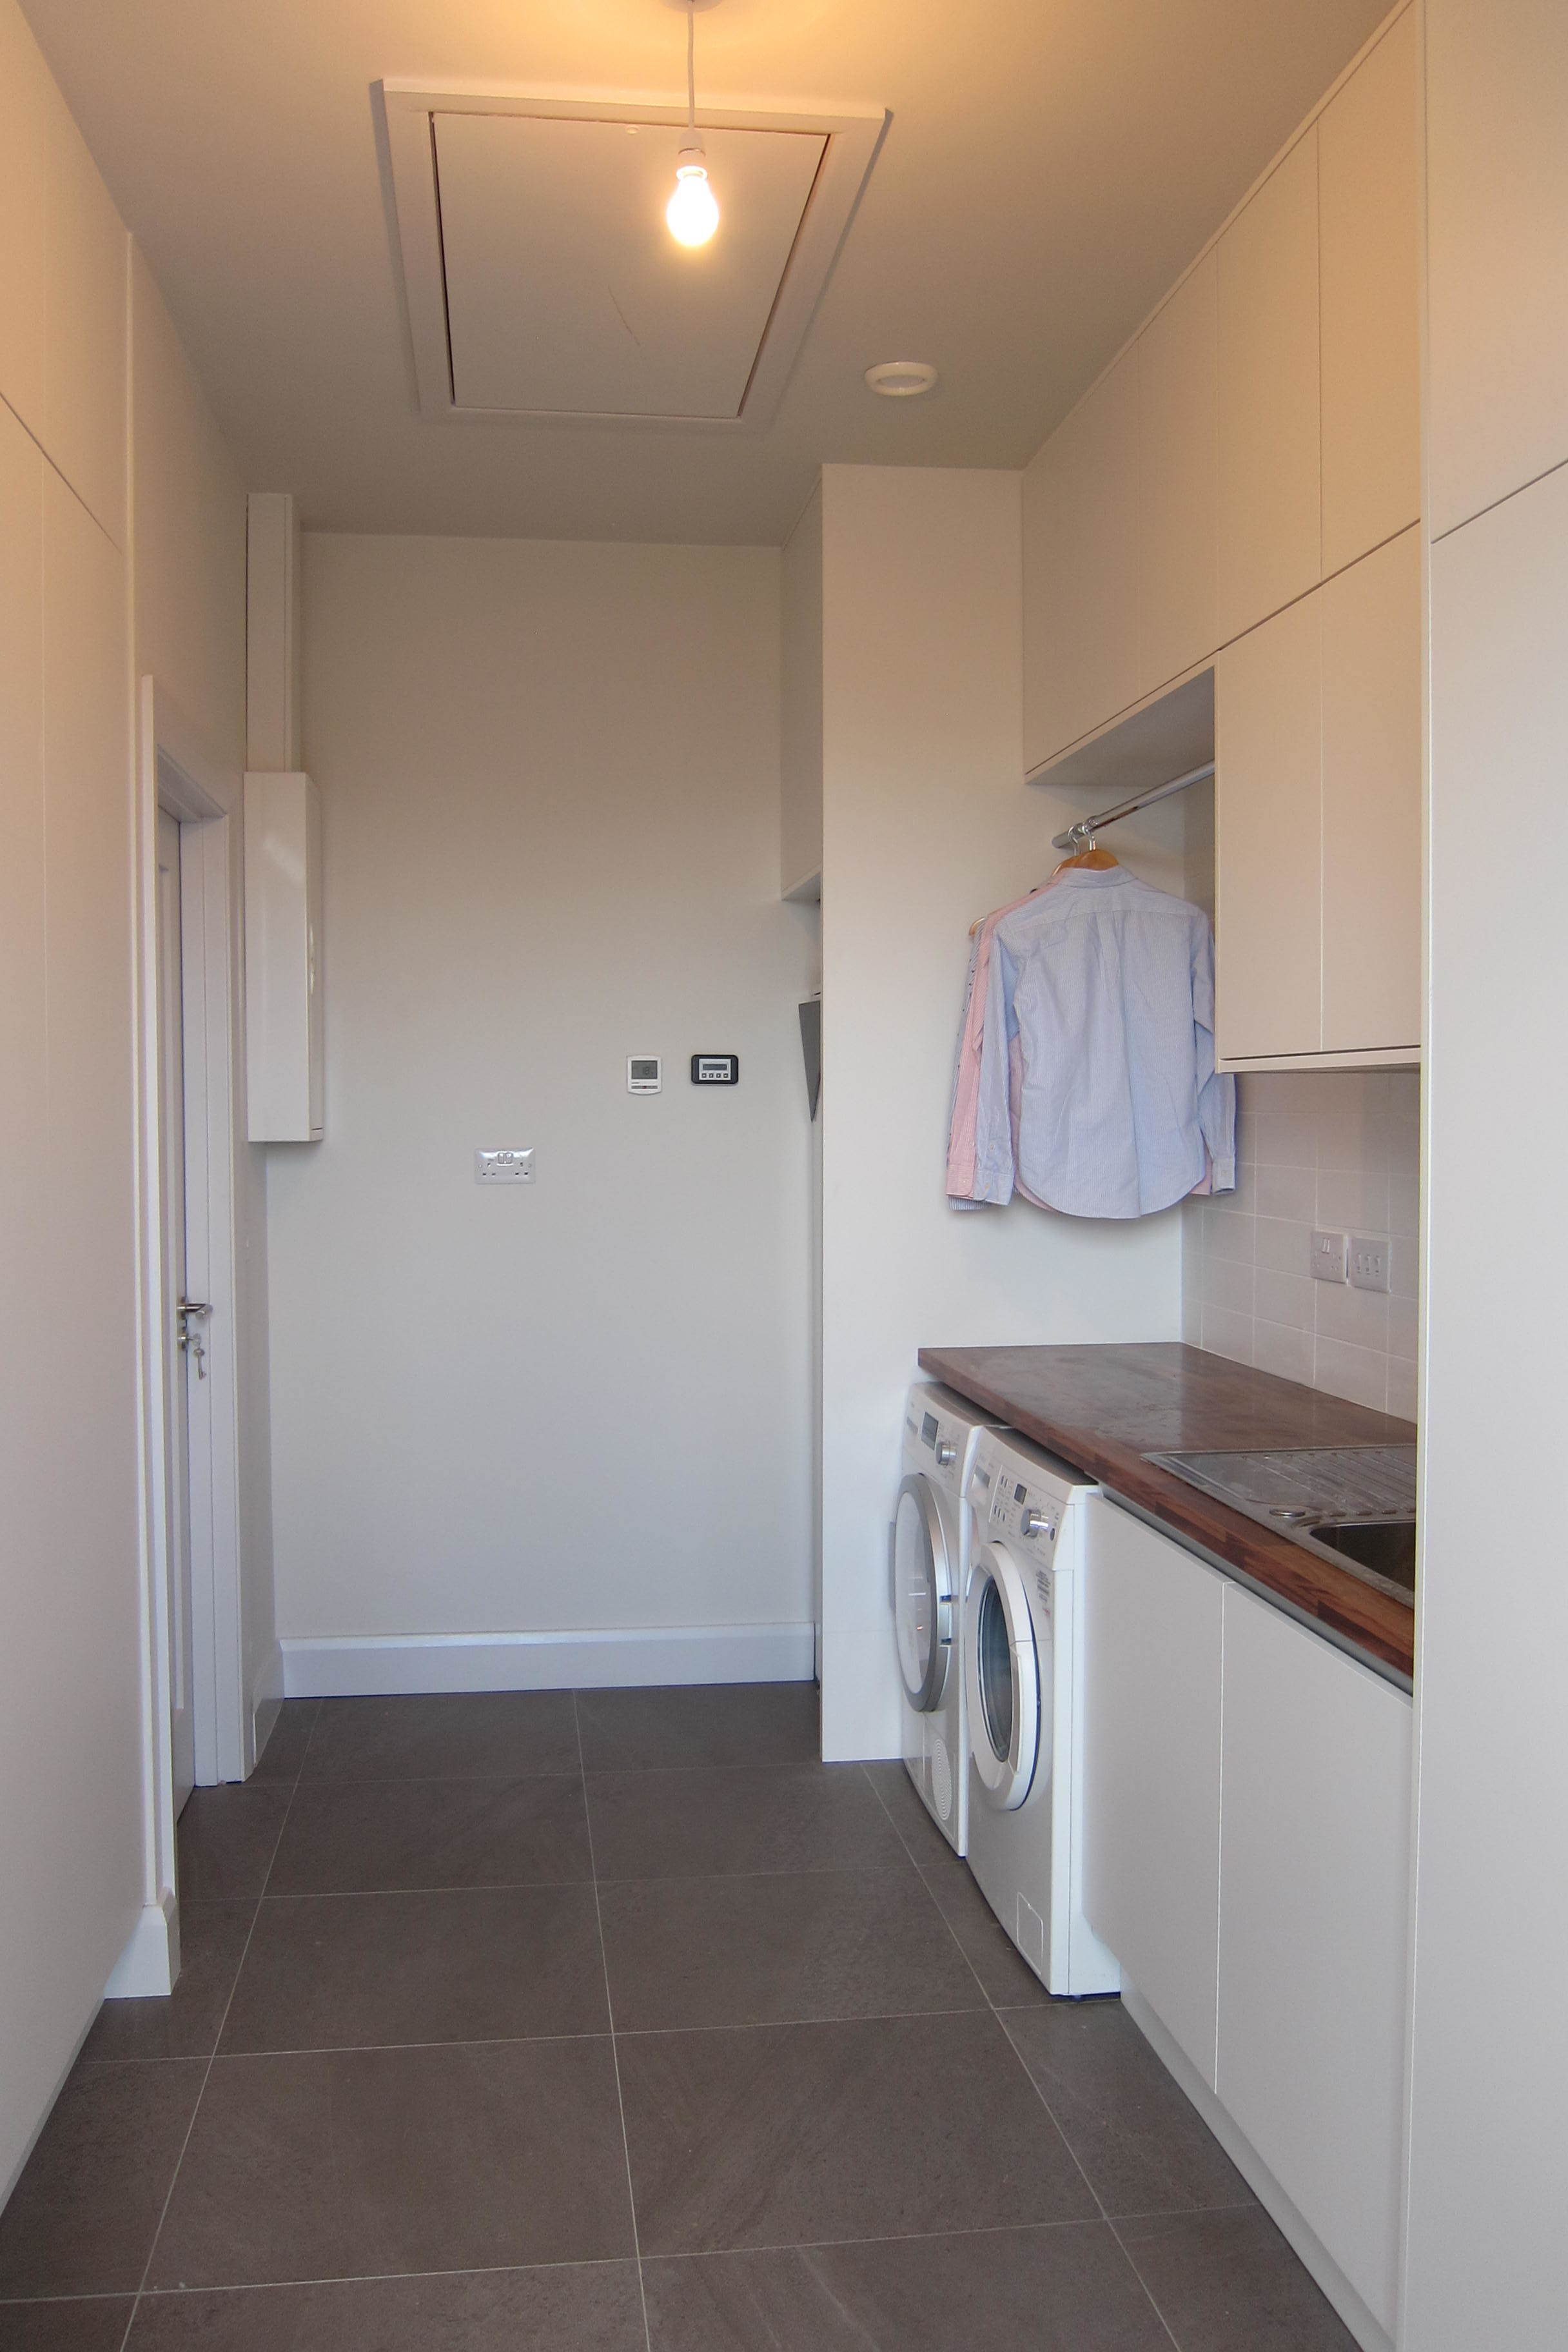 TX3 RTI10 Moate AFTER Utility Room  - Copy.JPG